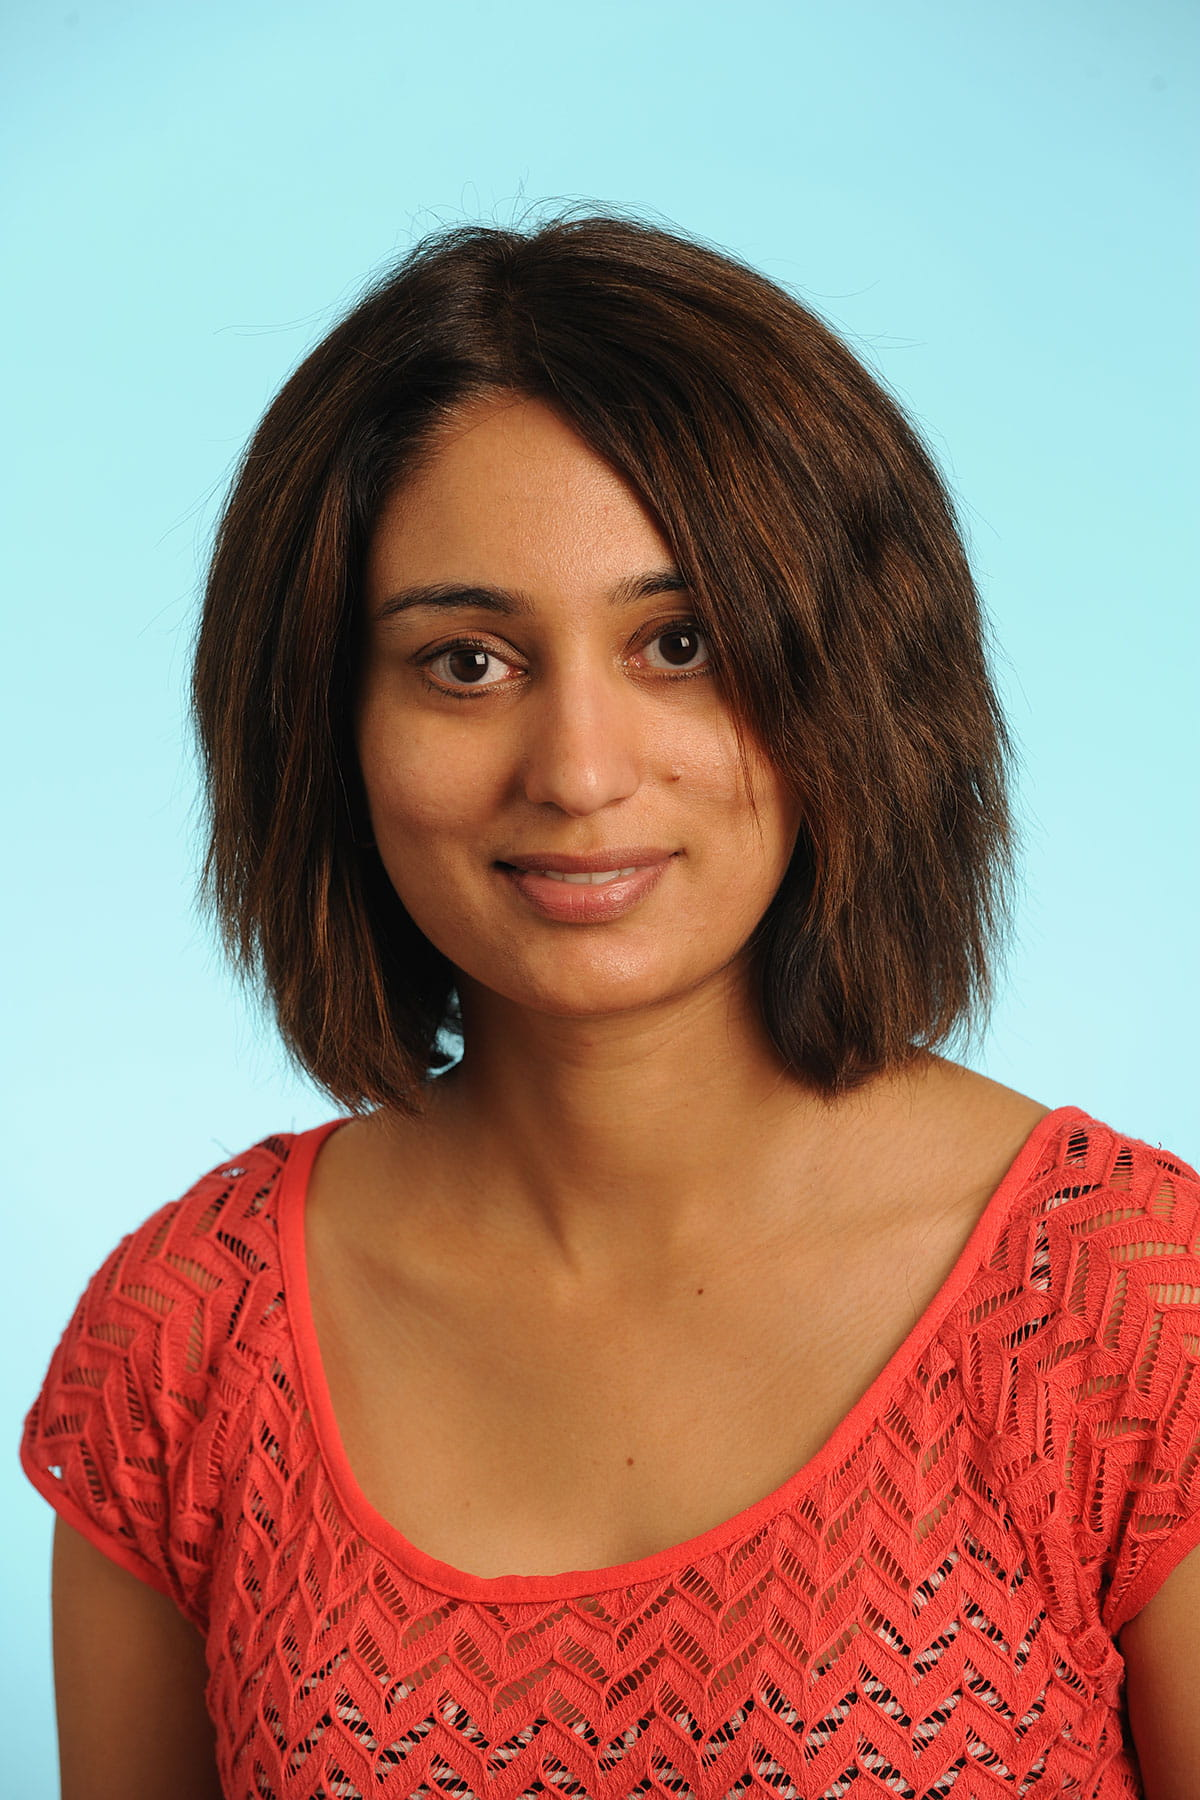 A photo of Pooja Khandelwal.